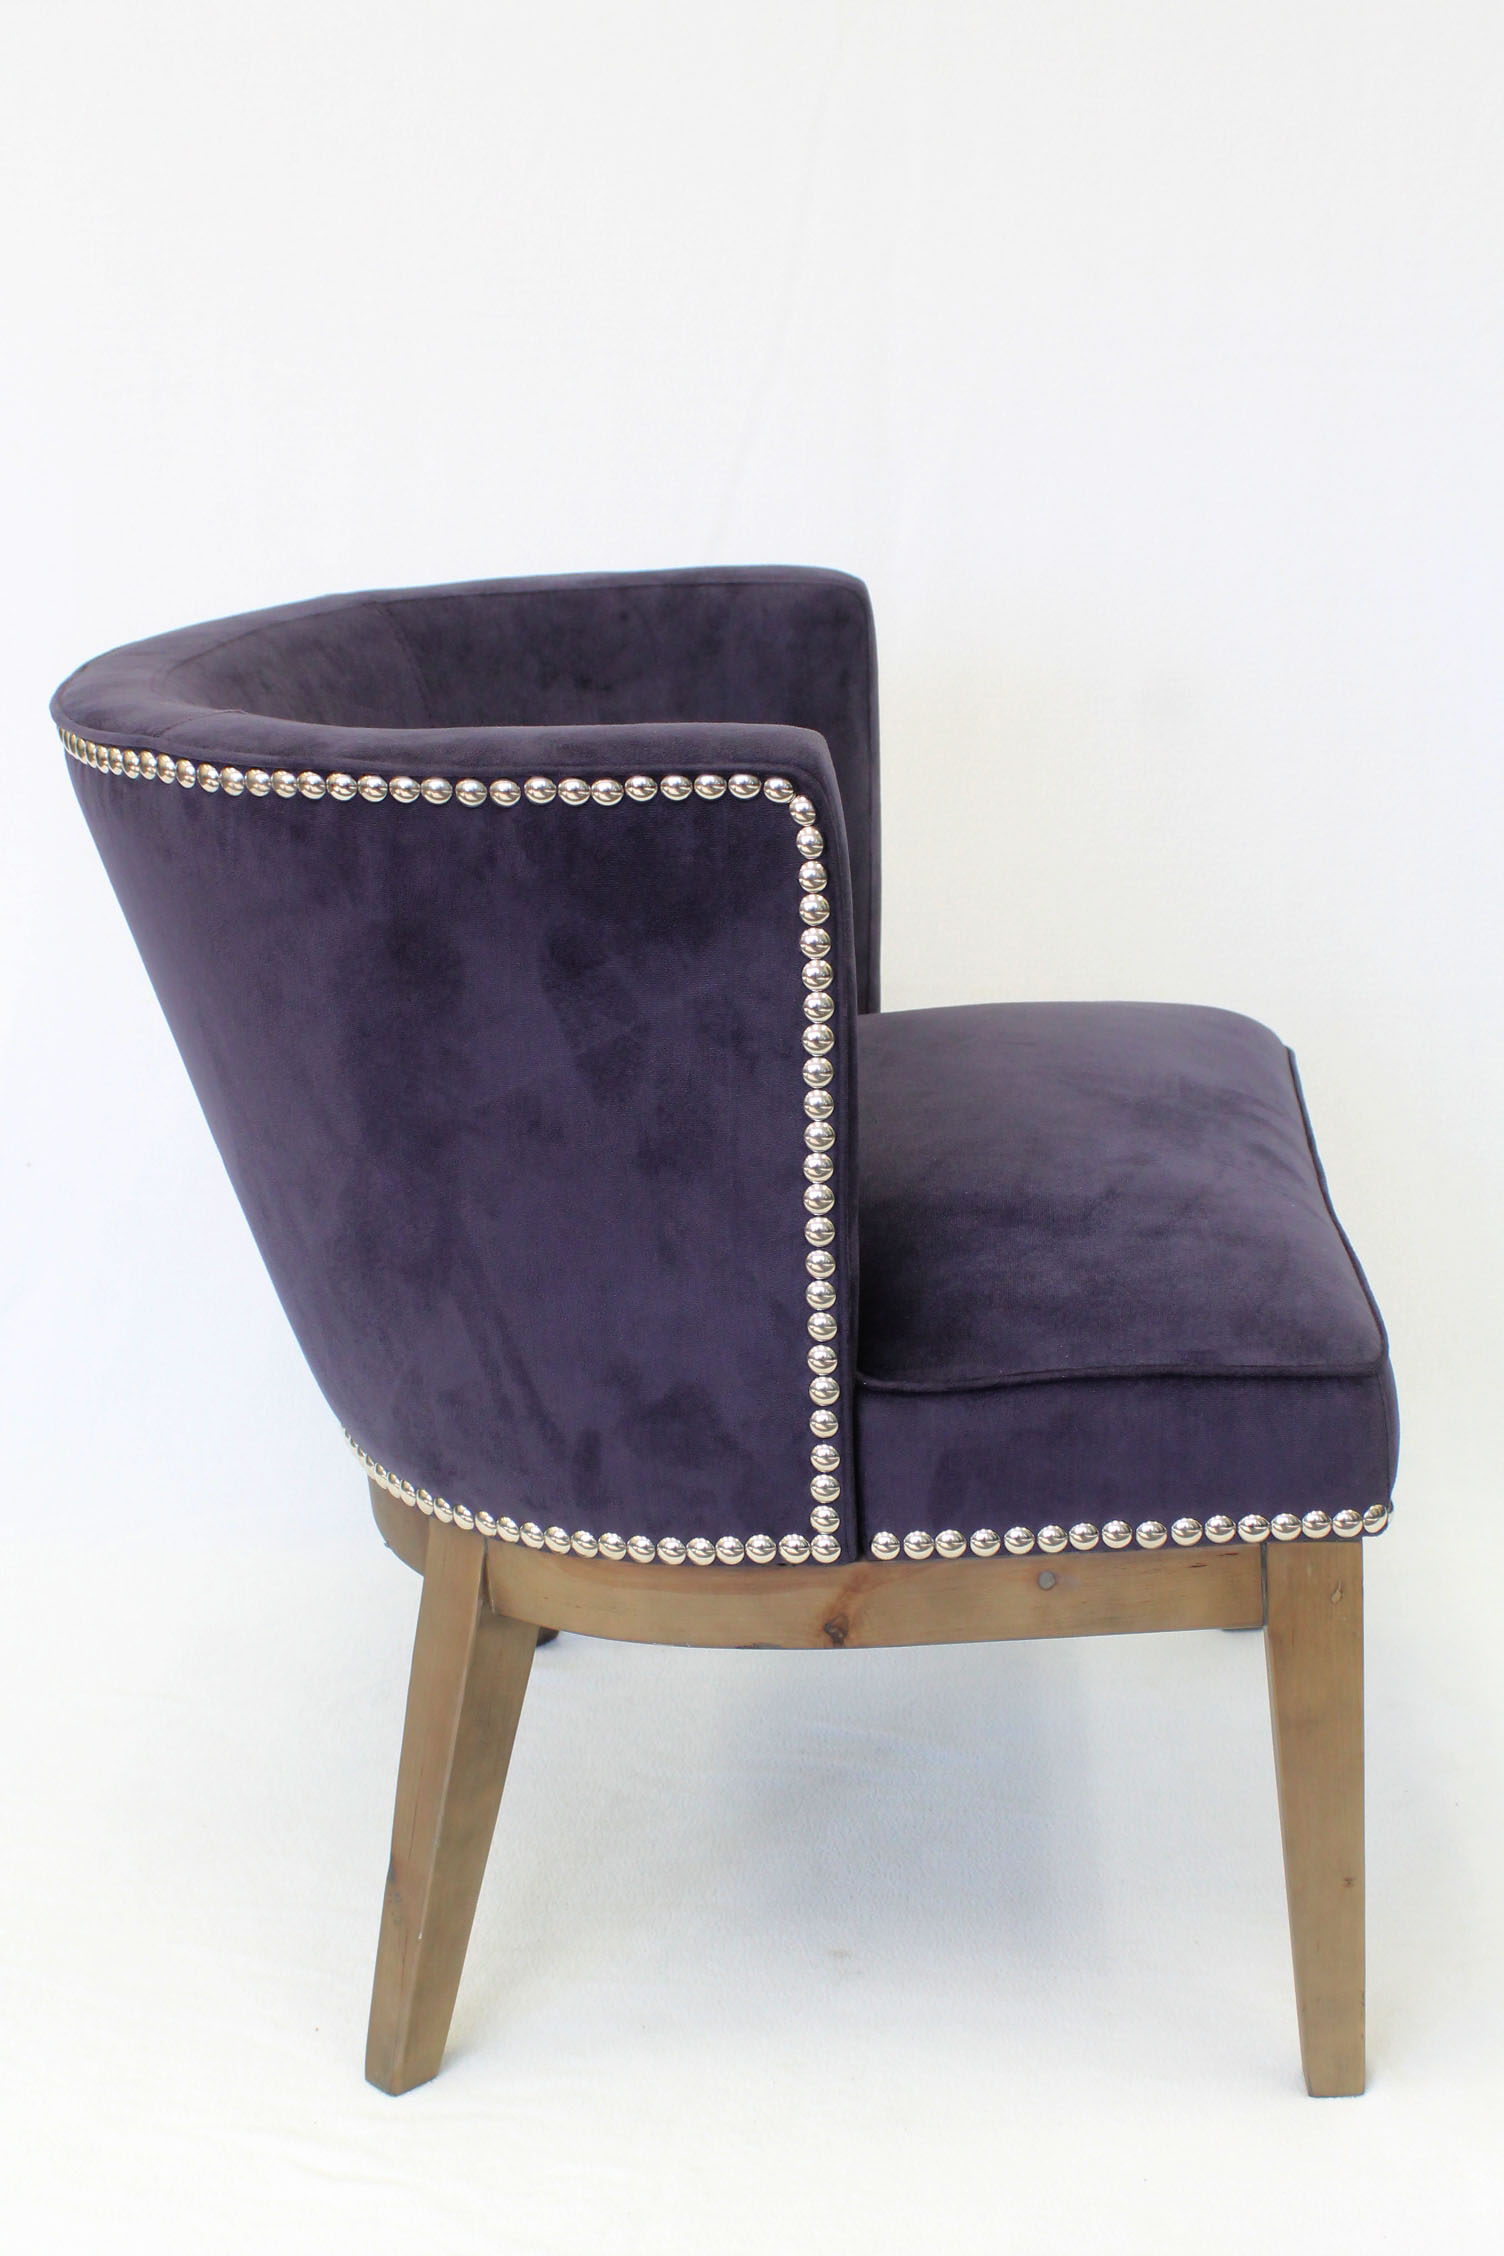 Purple Accent Chair Ava Driftwood Oversized Accent Chair